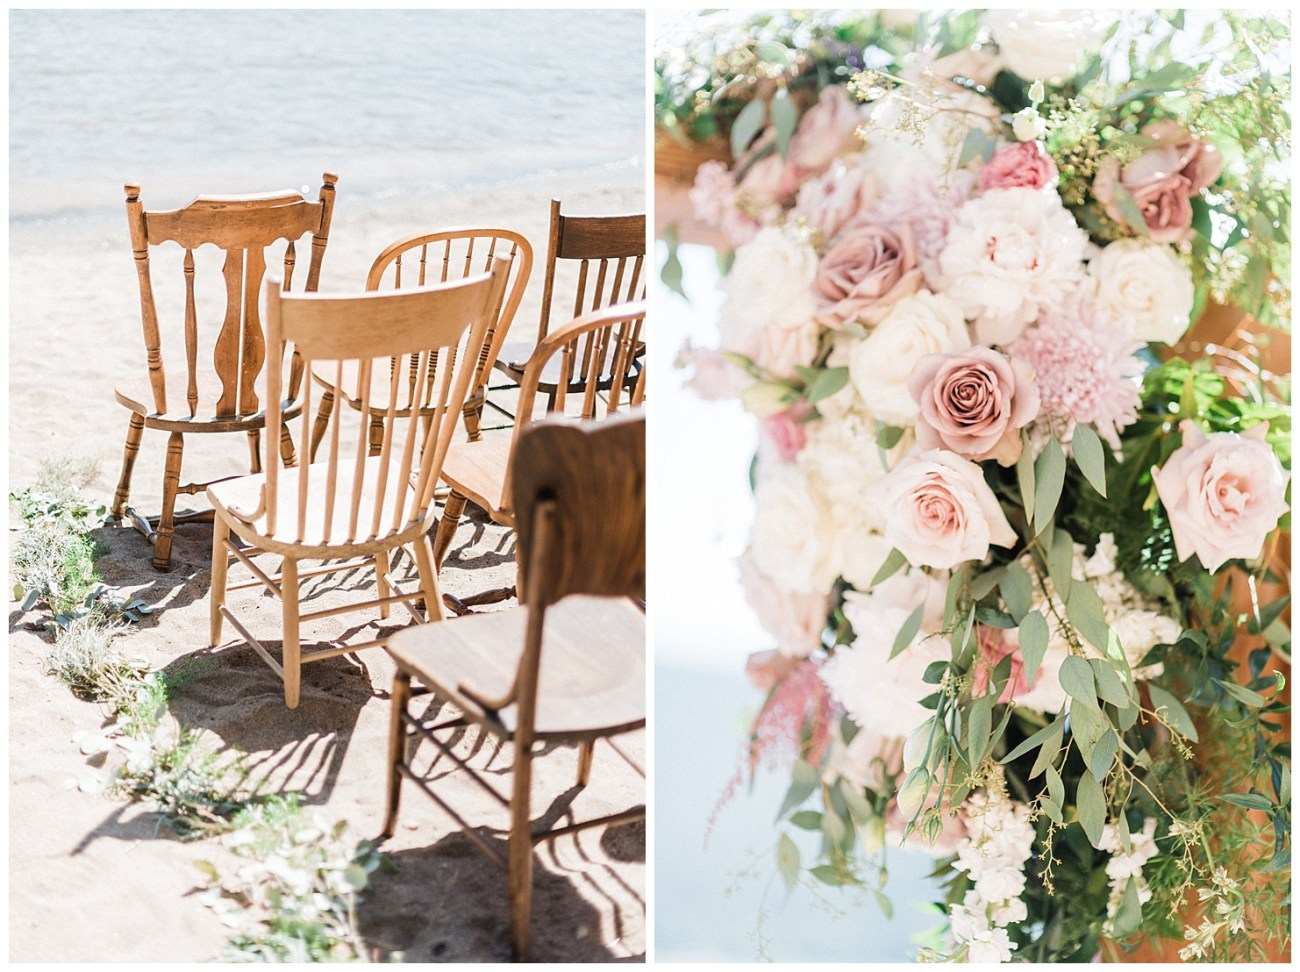 Ceremony details at a Lake Coeur d'Alene Wedding by Forthright Photo